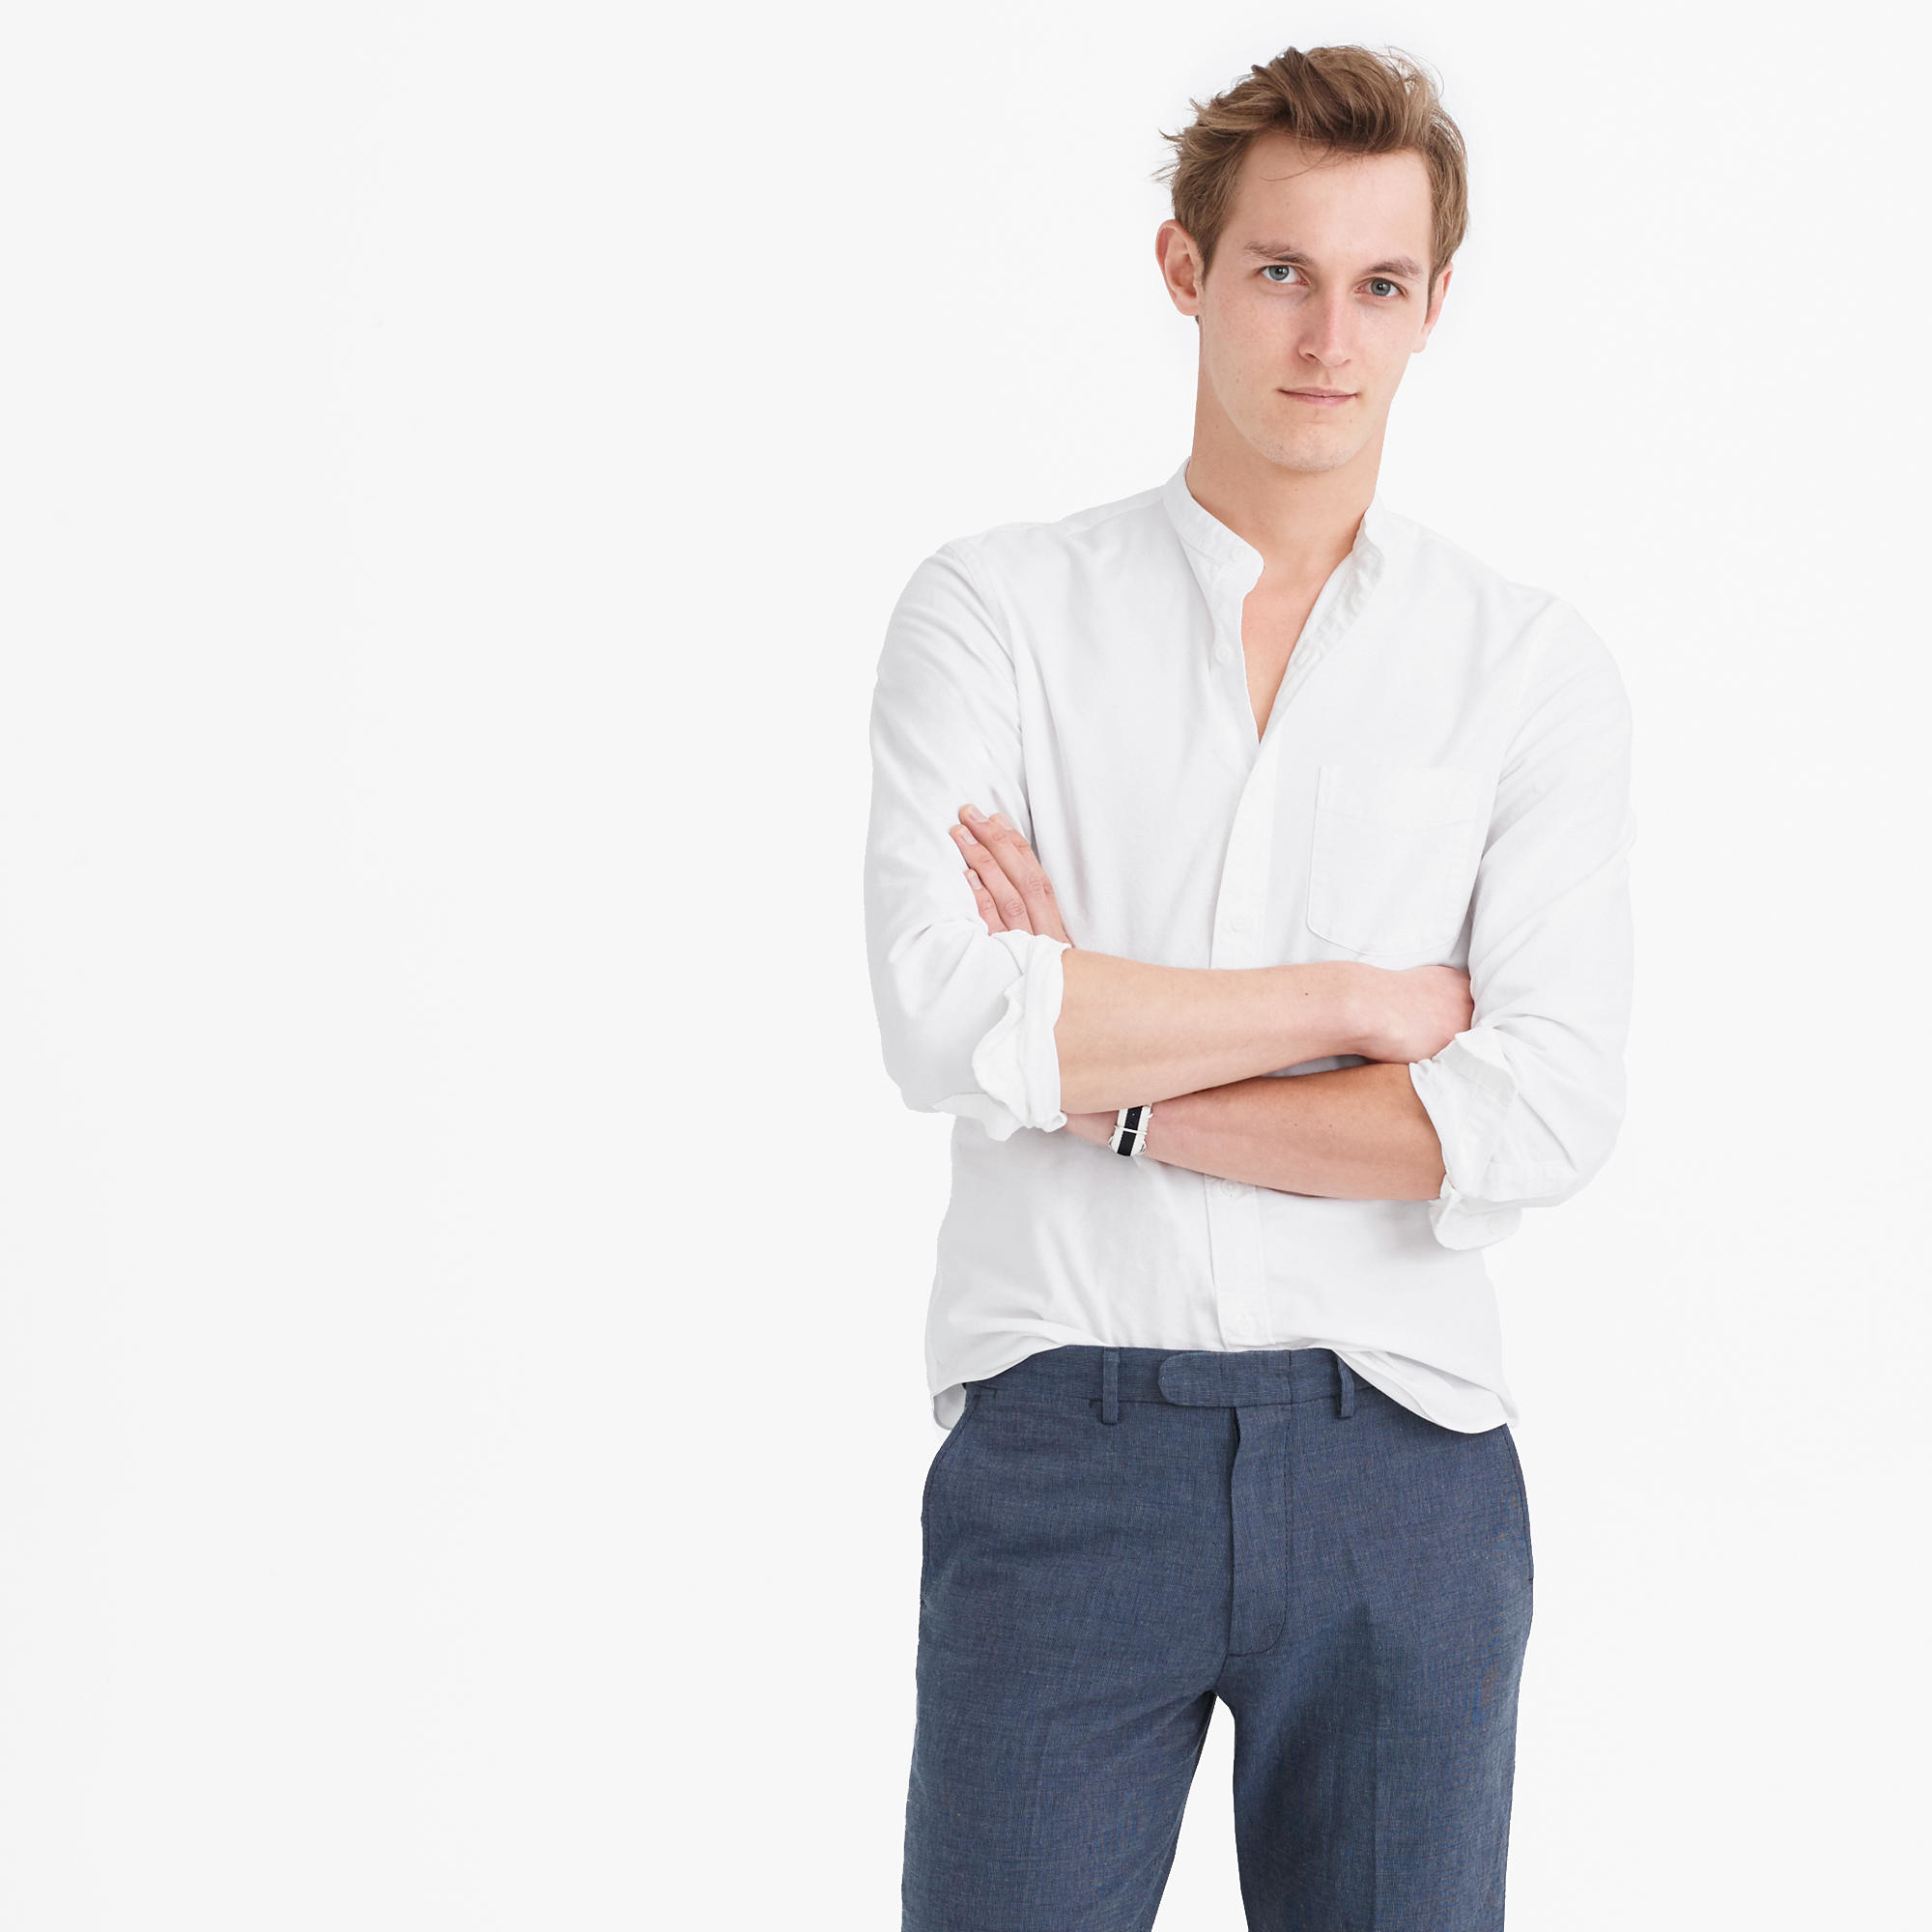 Lyst Jew Band Collar Oxford Shirt In White In White For Men